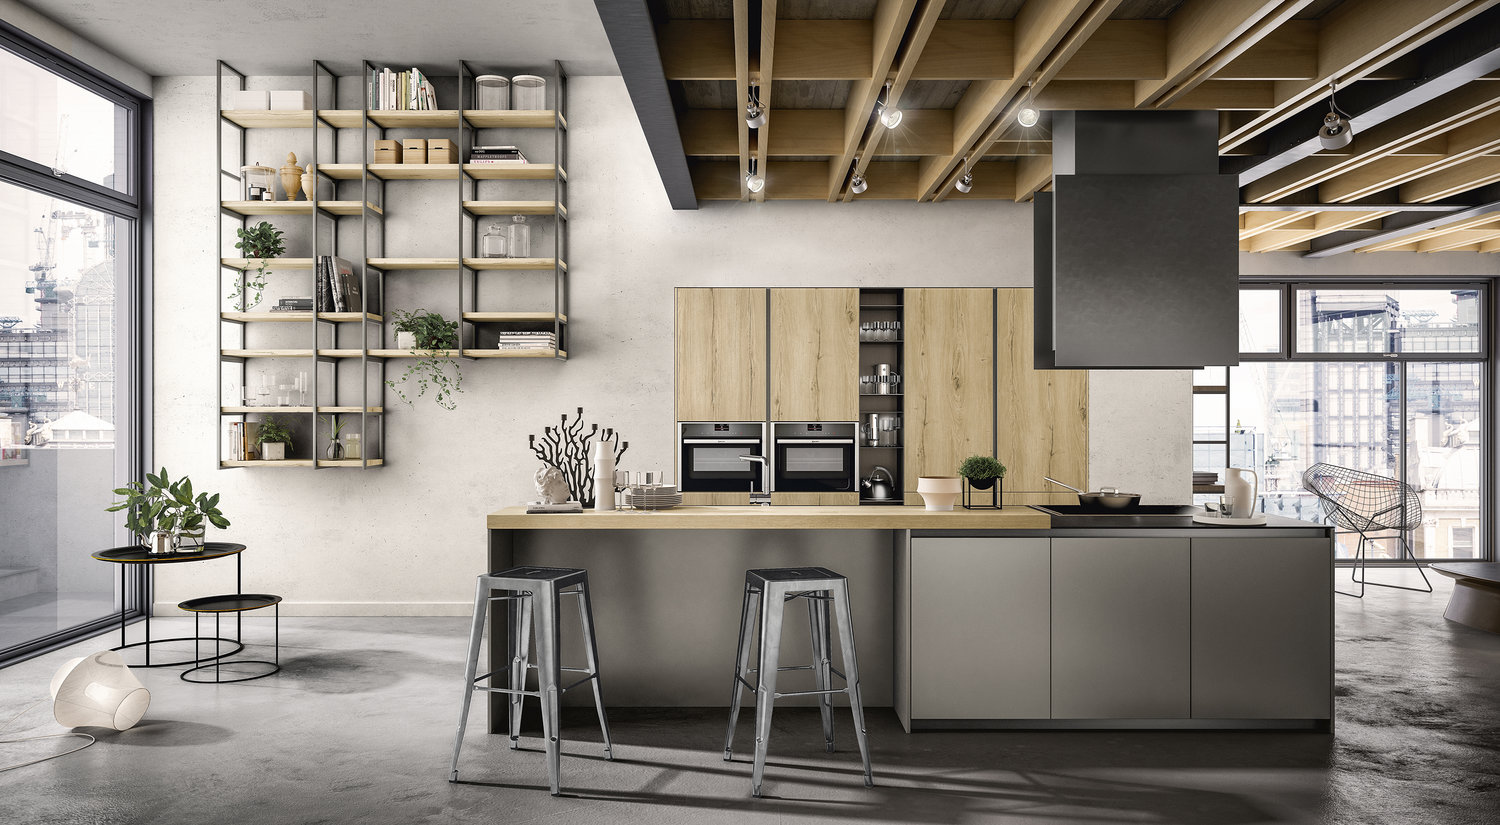 combine grey with woodgrain textures for warmth and visual harmony.